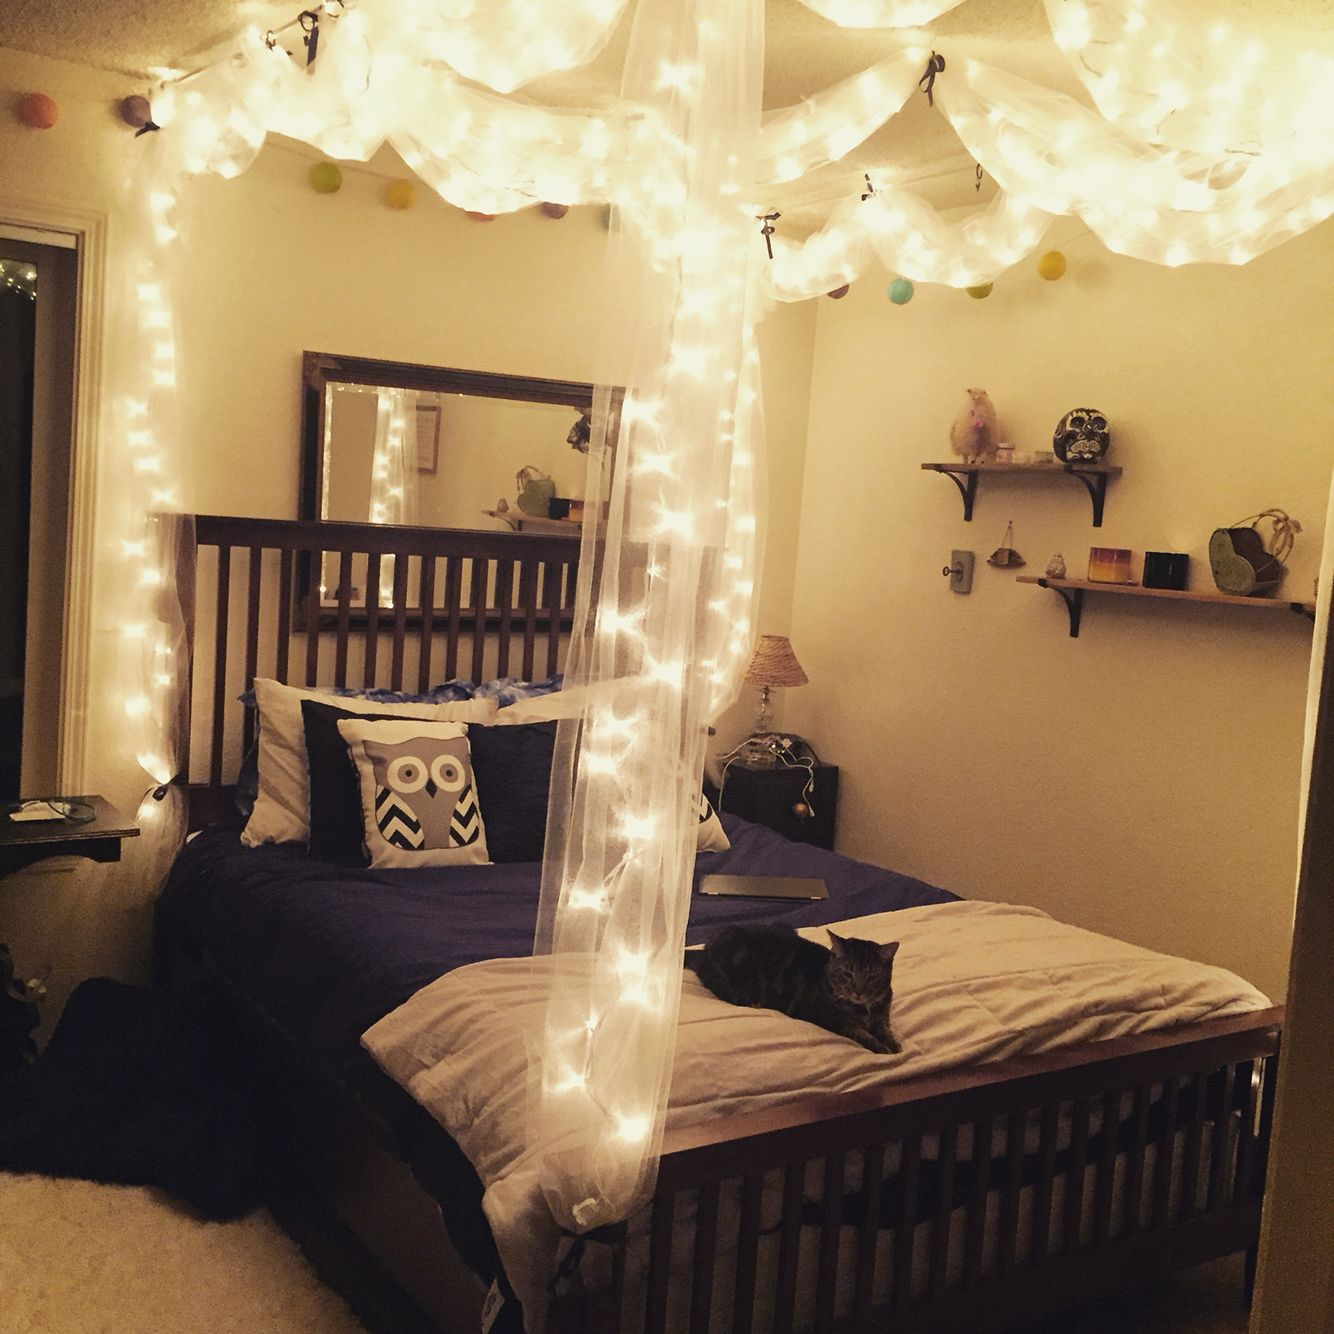 Diy Bed Canopy With Lights Diy Pinterest Canopy